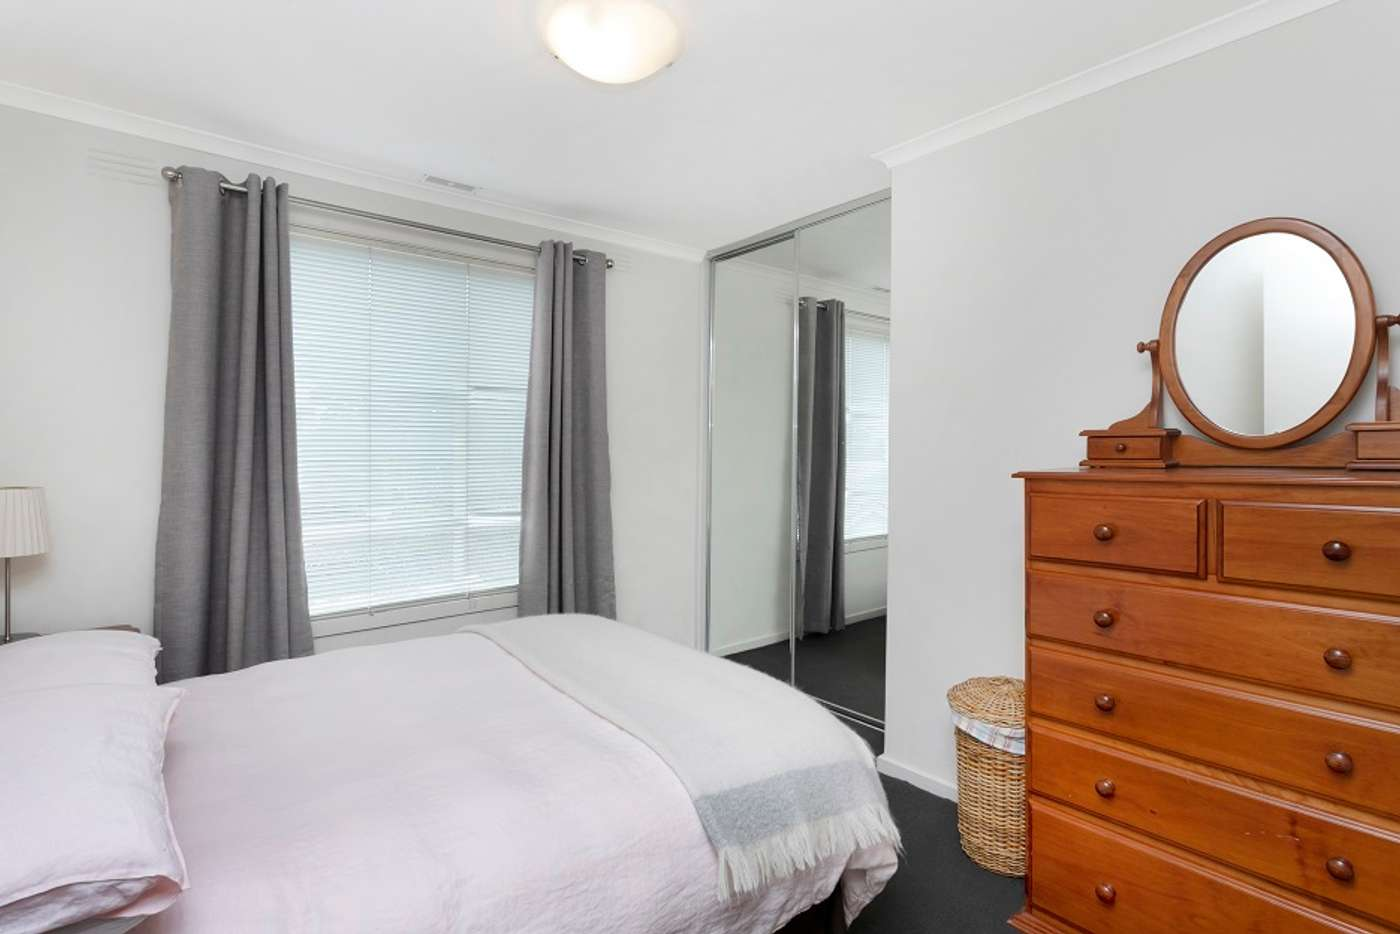 Seventh view of Homely apartment listing, 6/10 Schild Street, Yarraville VIC 3013